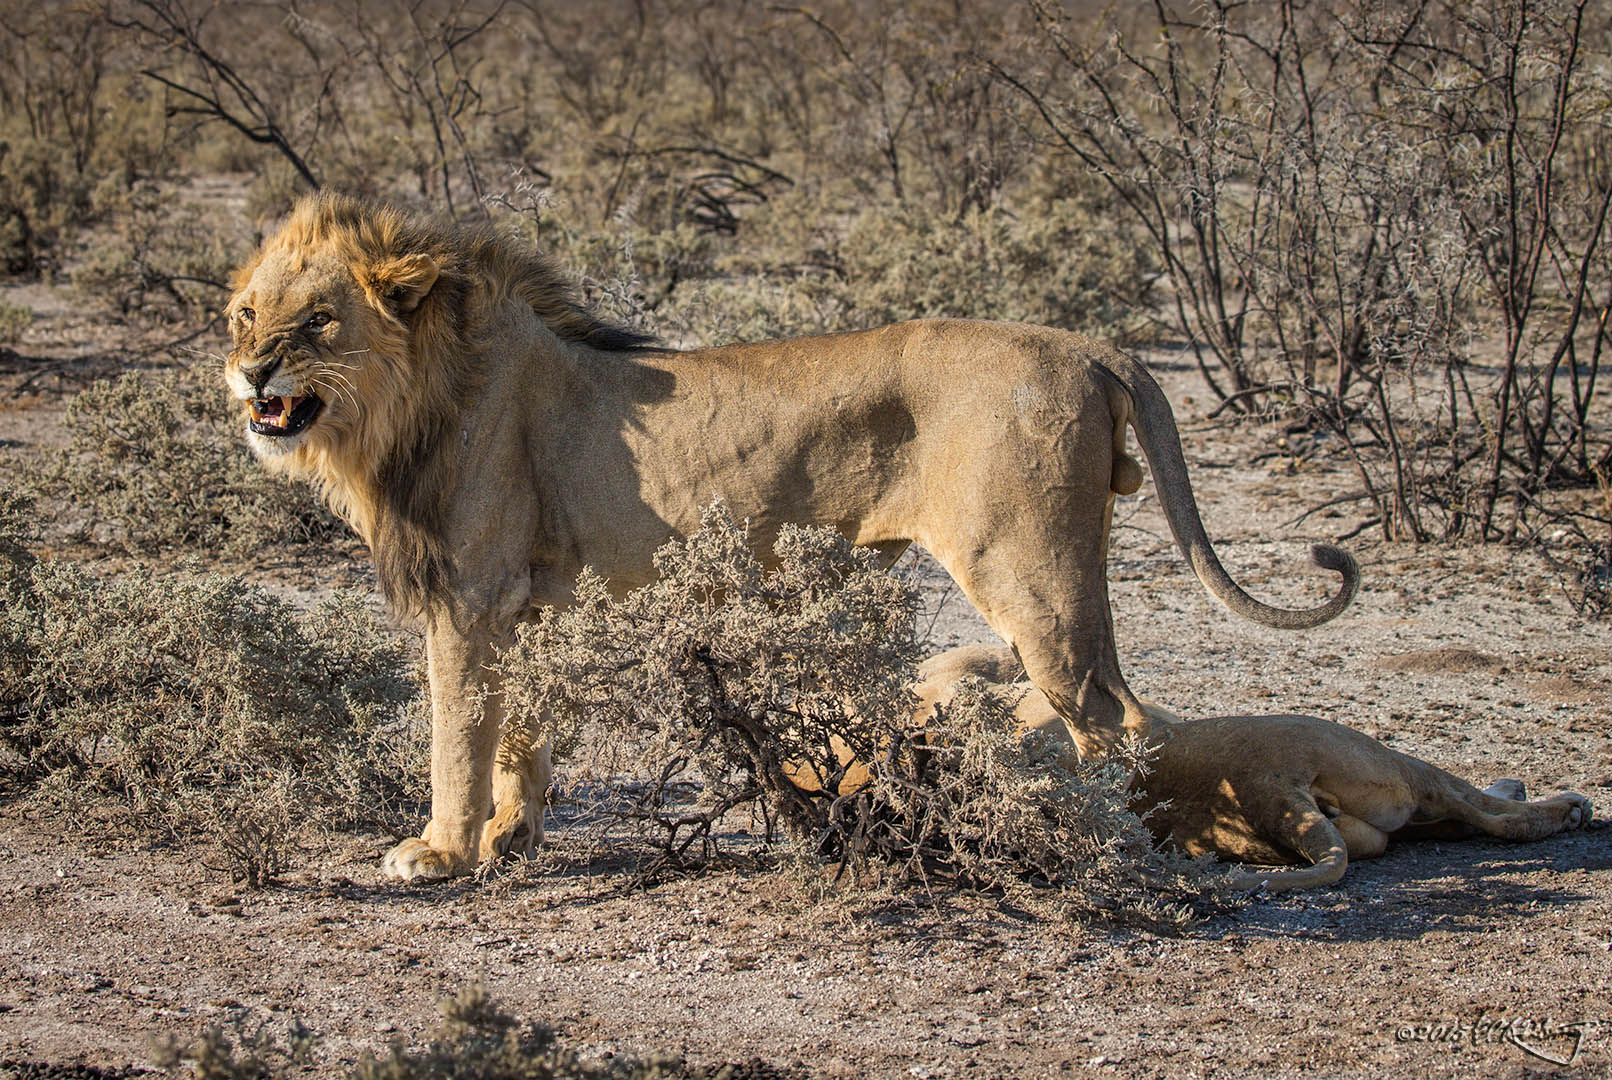 Lion_stands_over_lioness